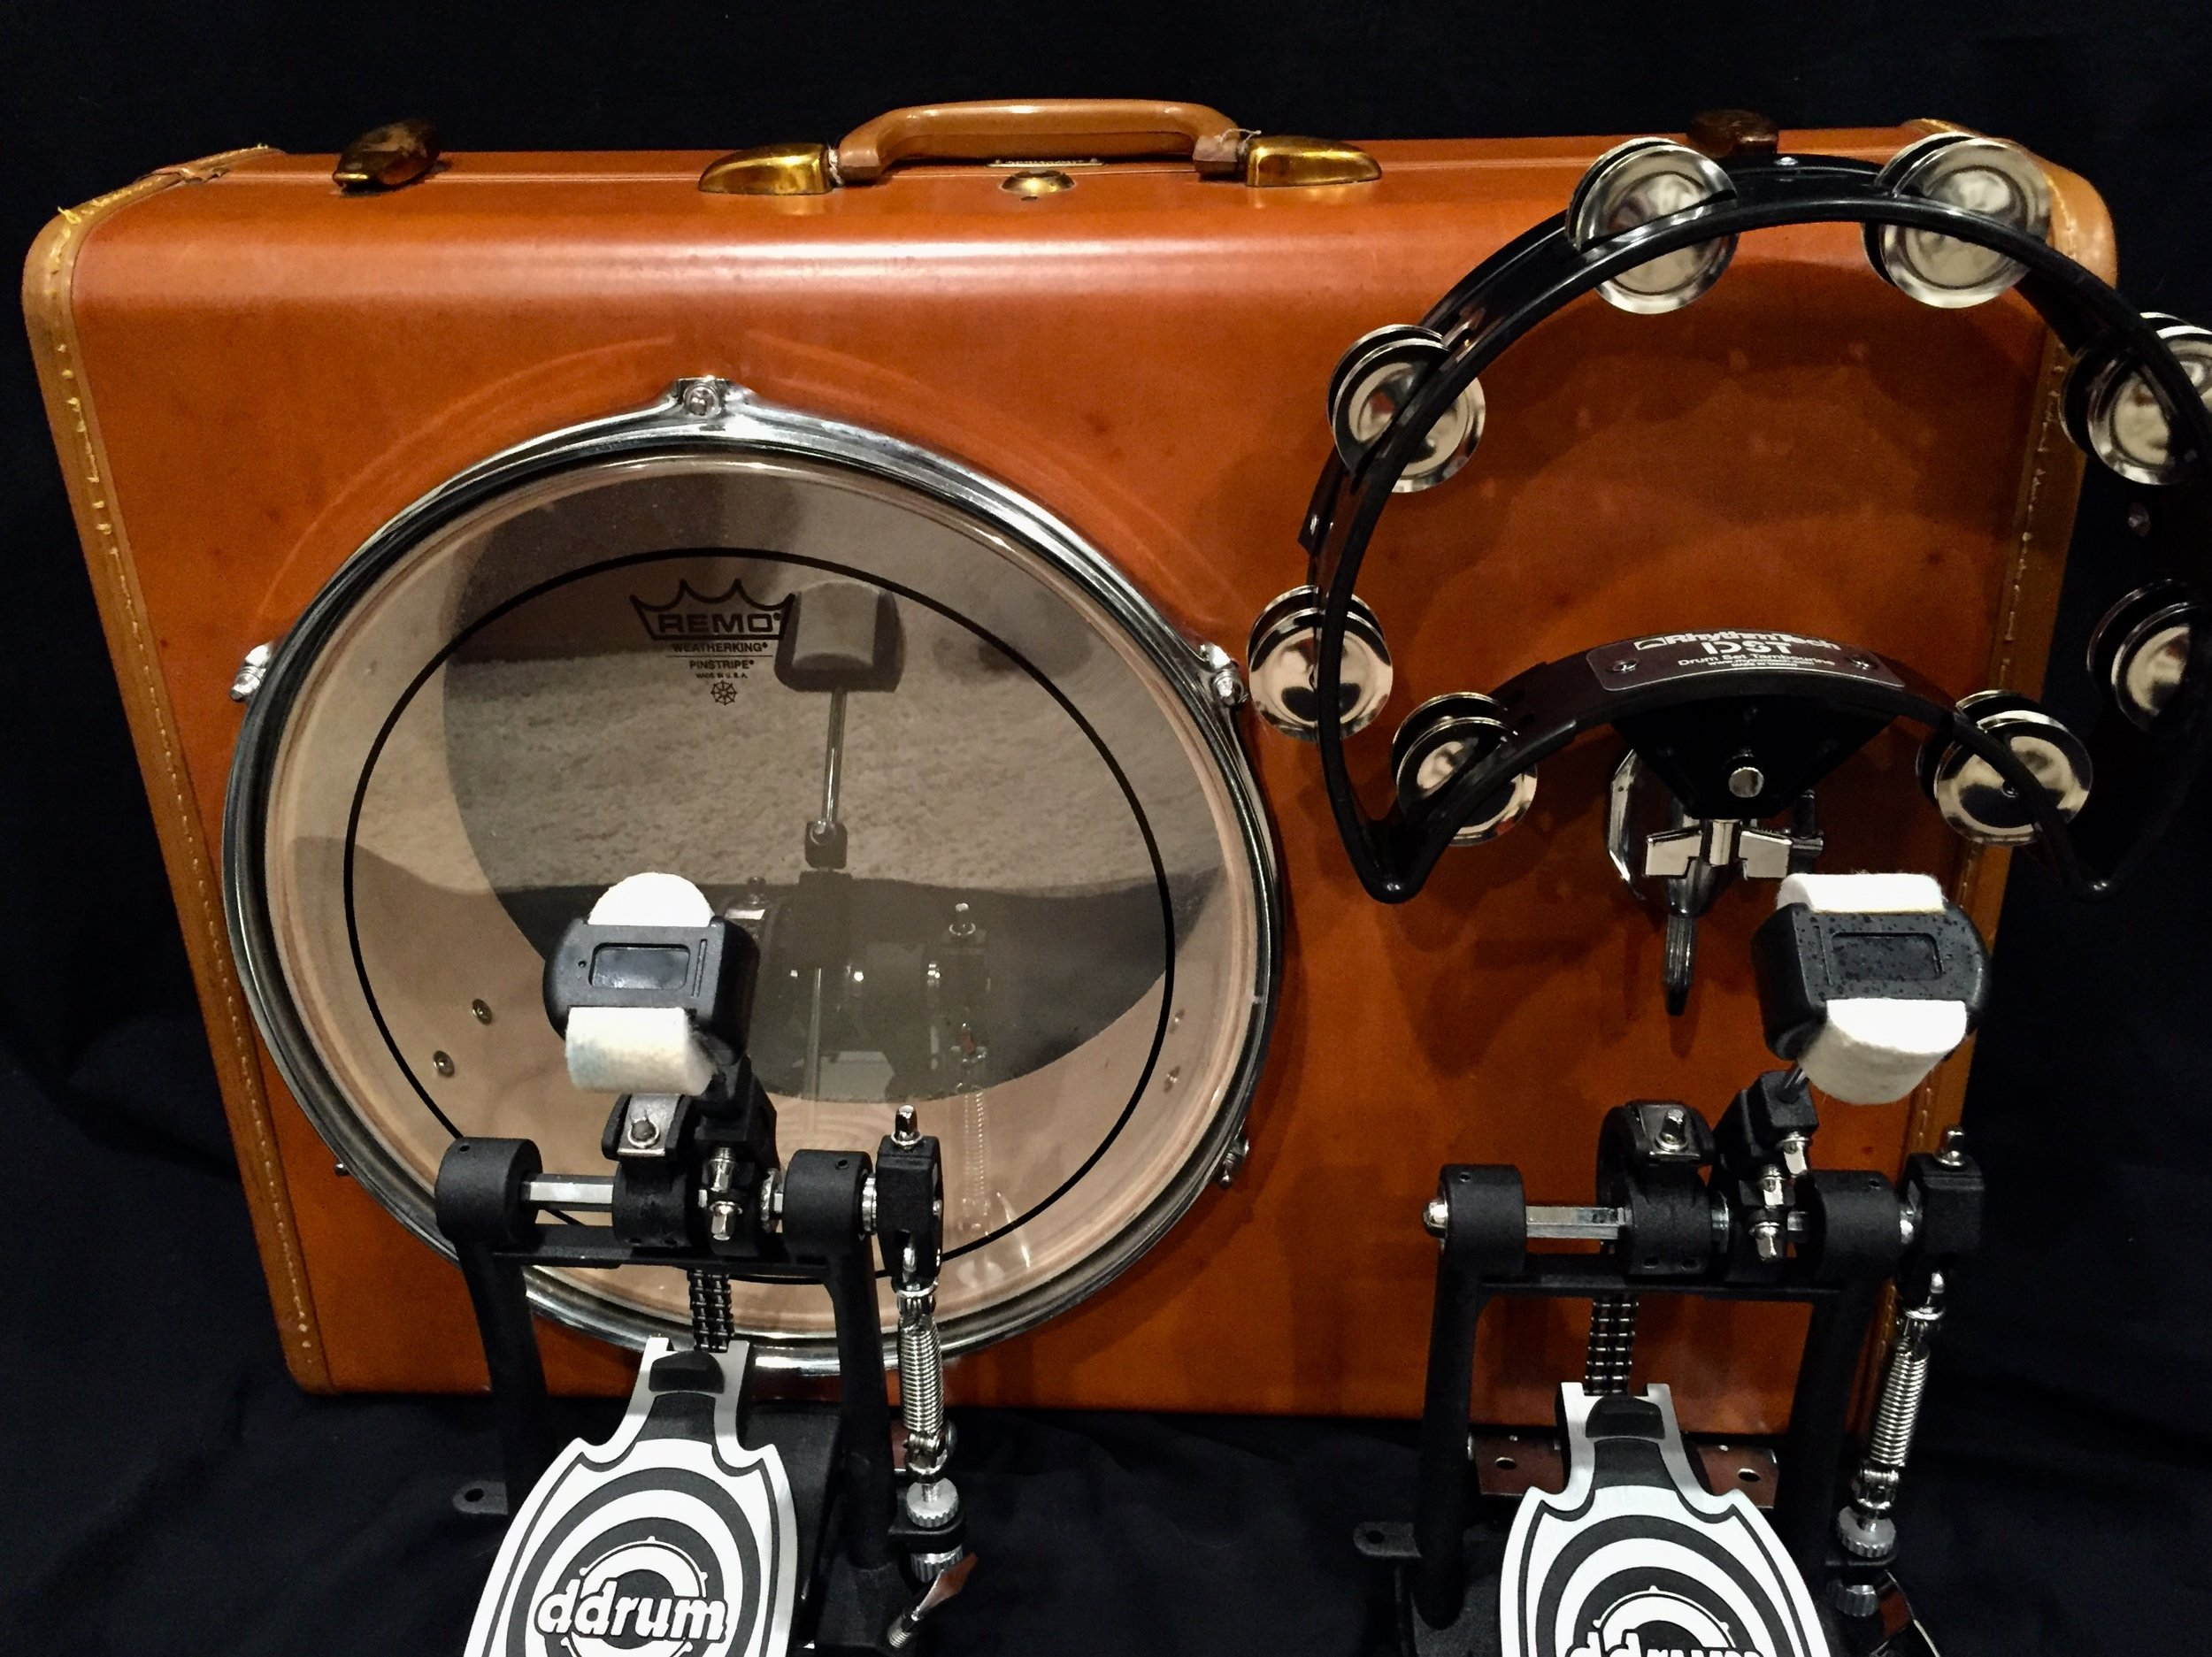 """- 13"""" vintage leatherAMAZING SUITCASE DRUM. REALLY WELL MADE. FAST SHIPPING. GREAT TRANSACTION. THANKS!GLENN C. - CALIFORNIA, MARCH 20, 2018"""